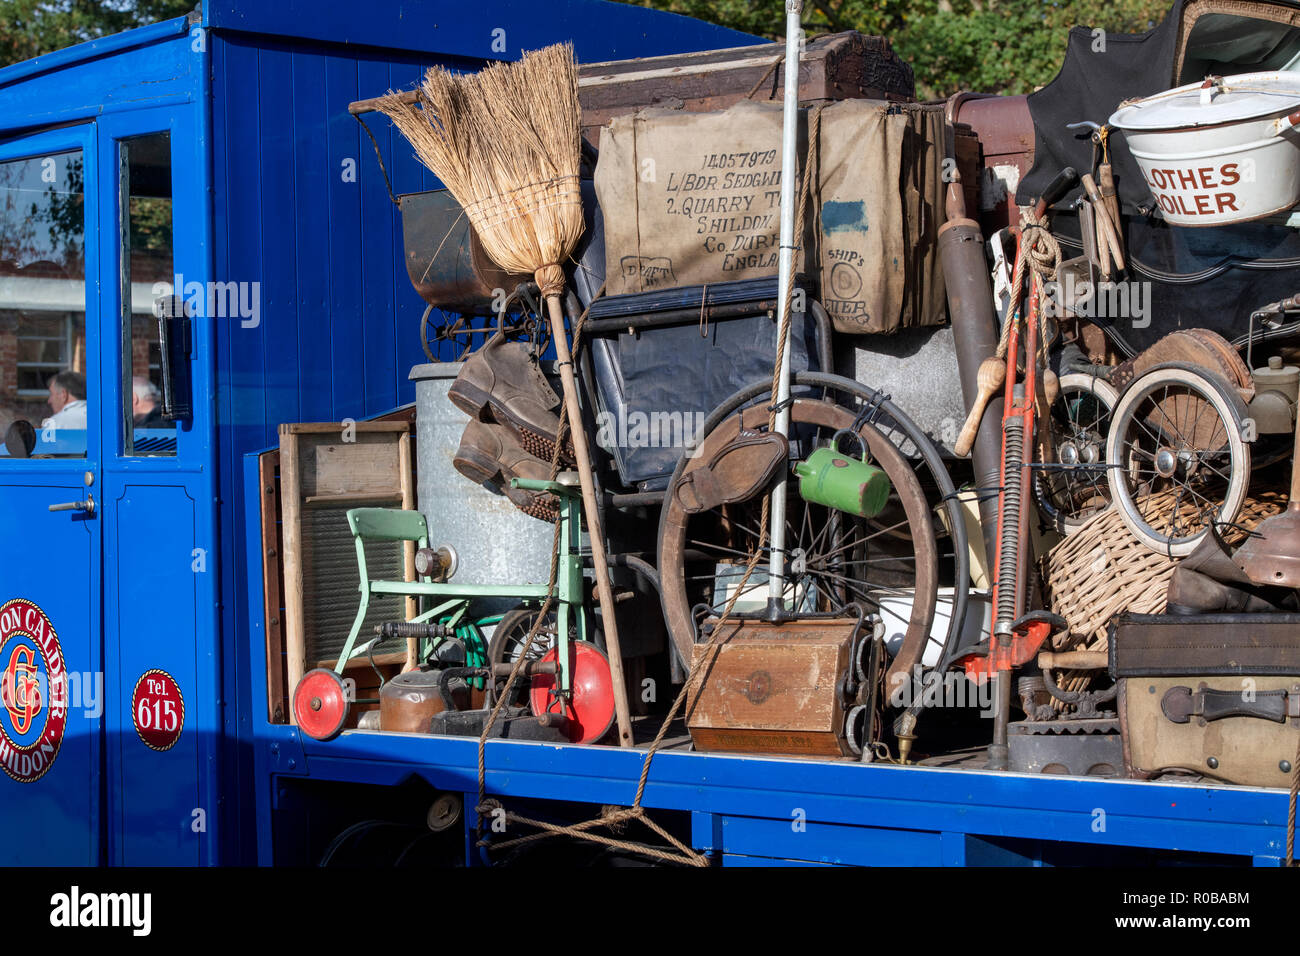 Old vintage household items on the back of a vintage lorry at Bicester heritage centre autumn sunday scramble event. Bicester, Oxfordshire, UK - Stock Image